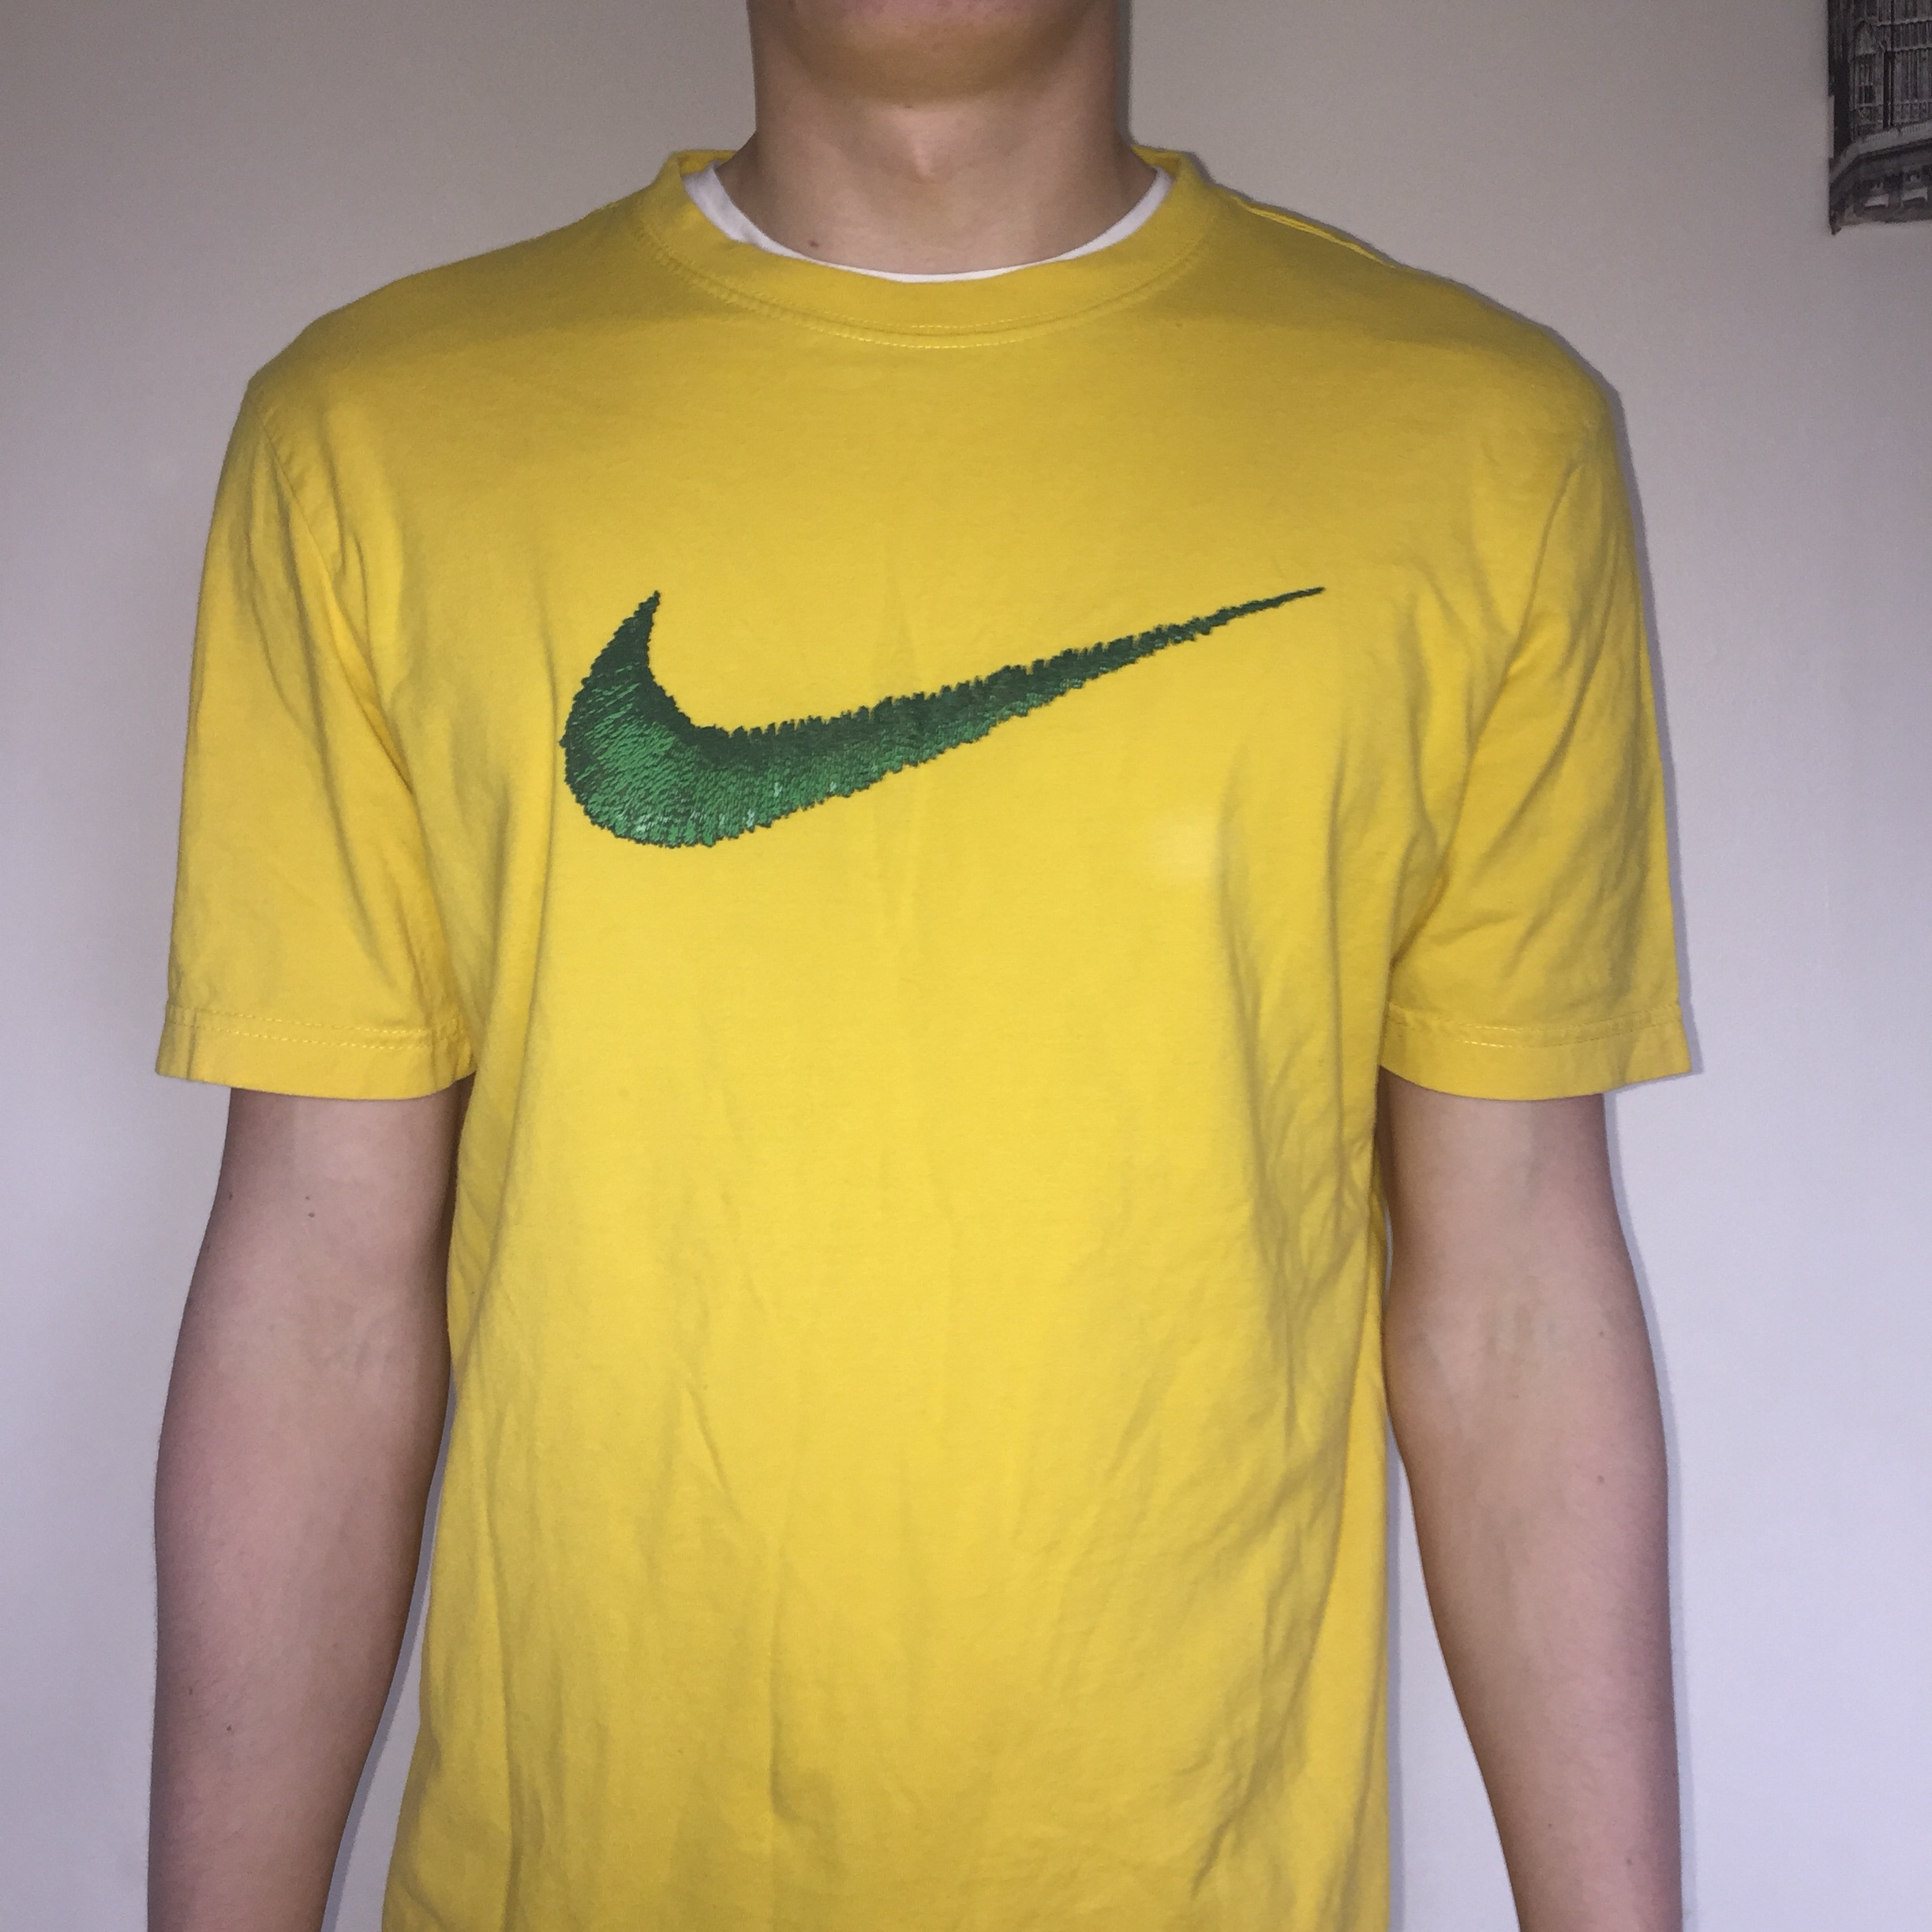 Yellow t-shirt with a green Nike tick